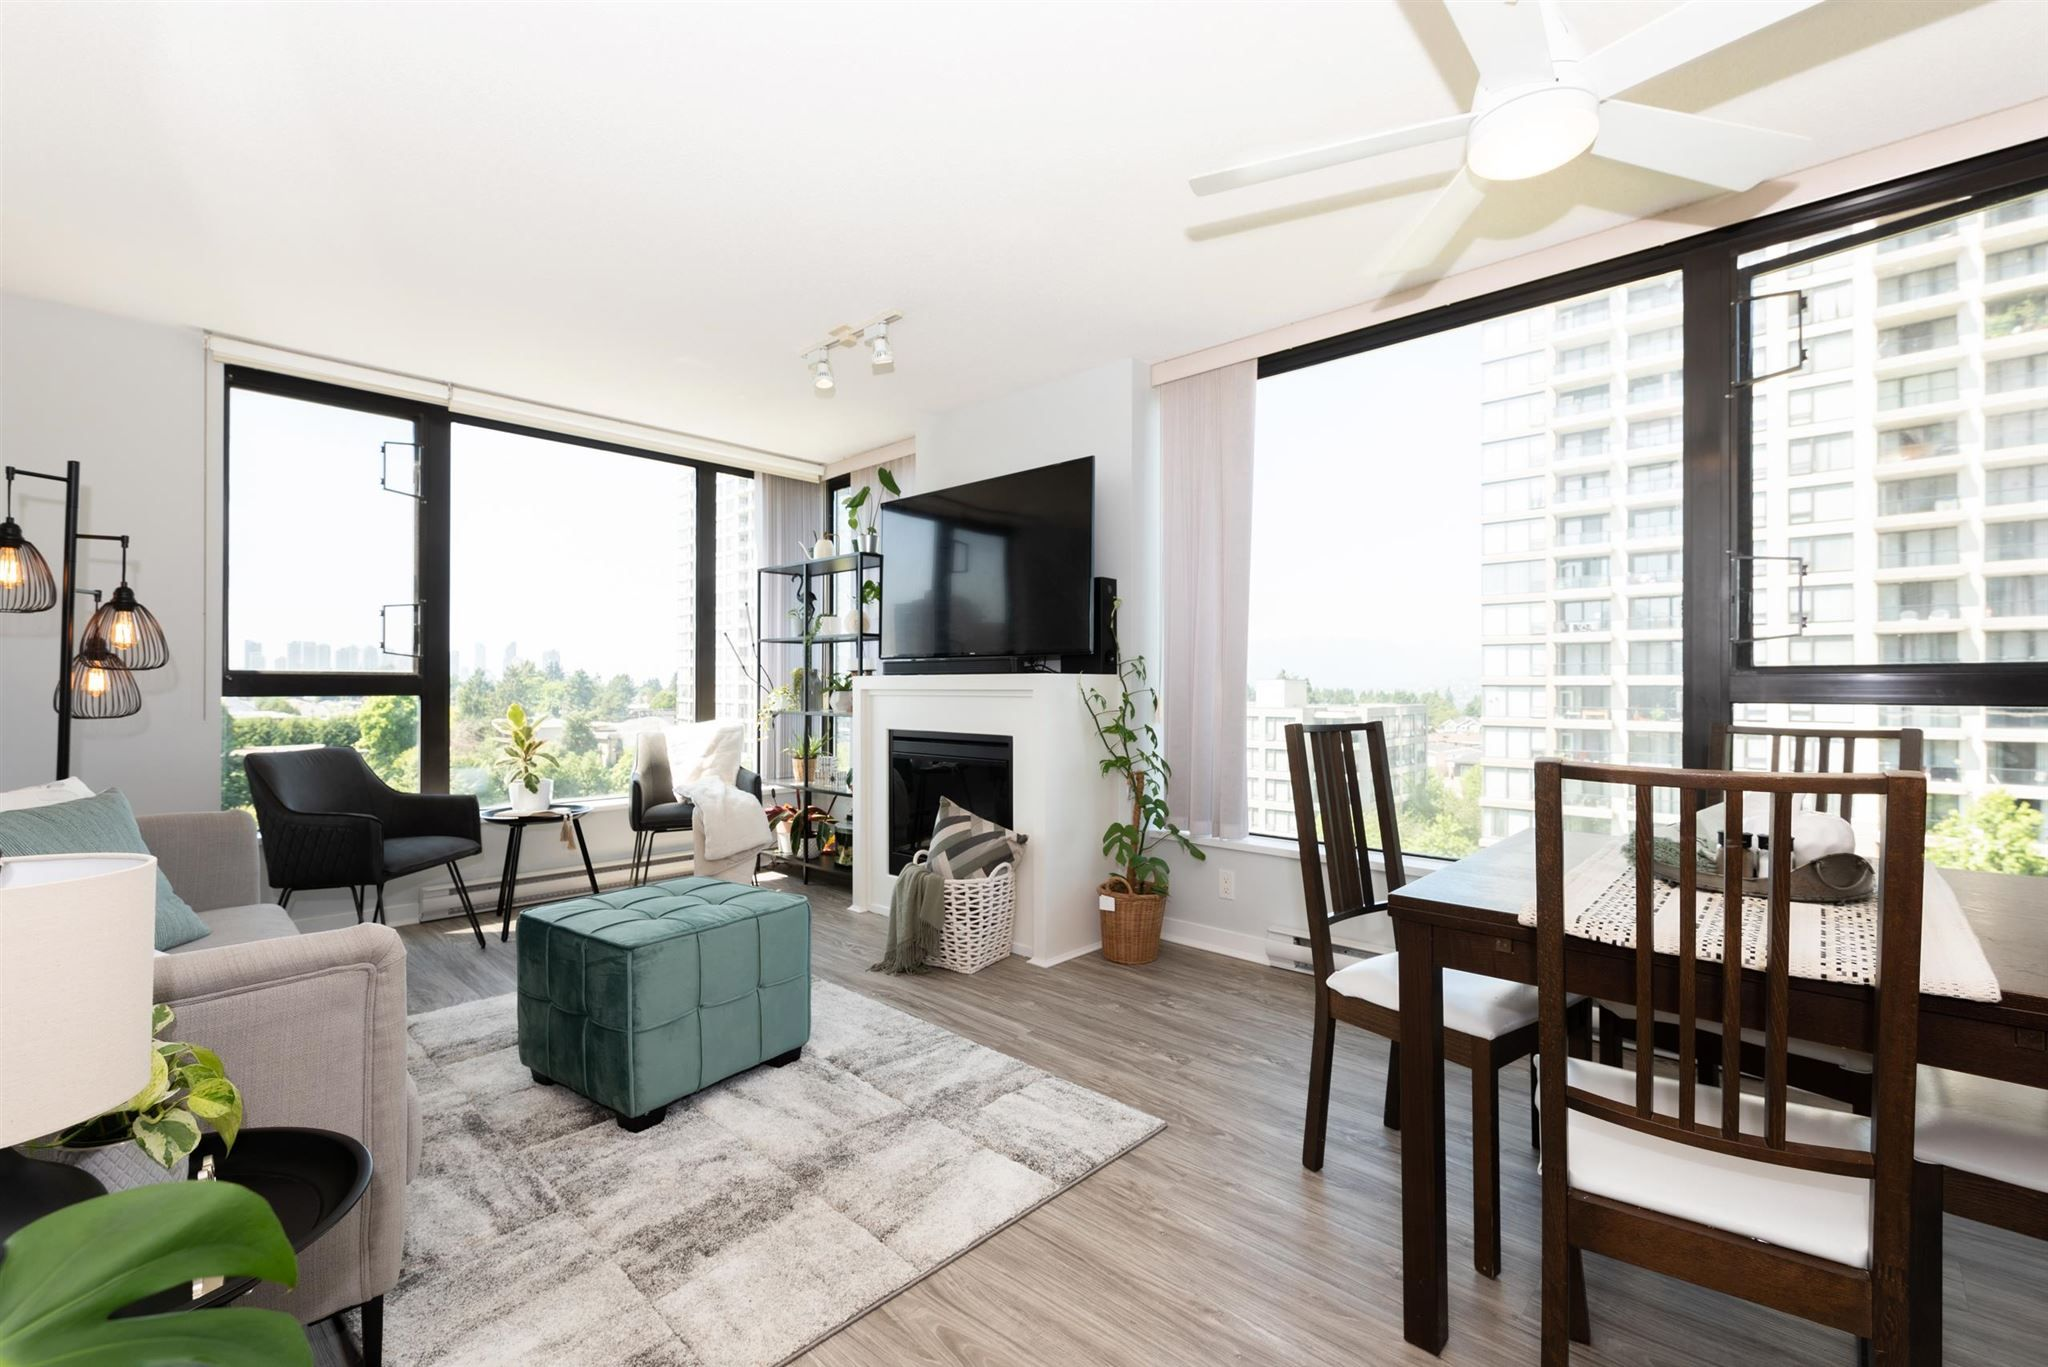 Main Photo: 802 7063 HALL Avenue in Burnaby: Highgate Condo for sale (Burnaby South)  : MLS®# R2603035